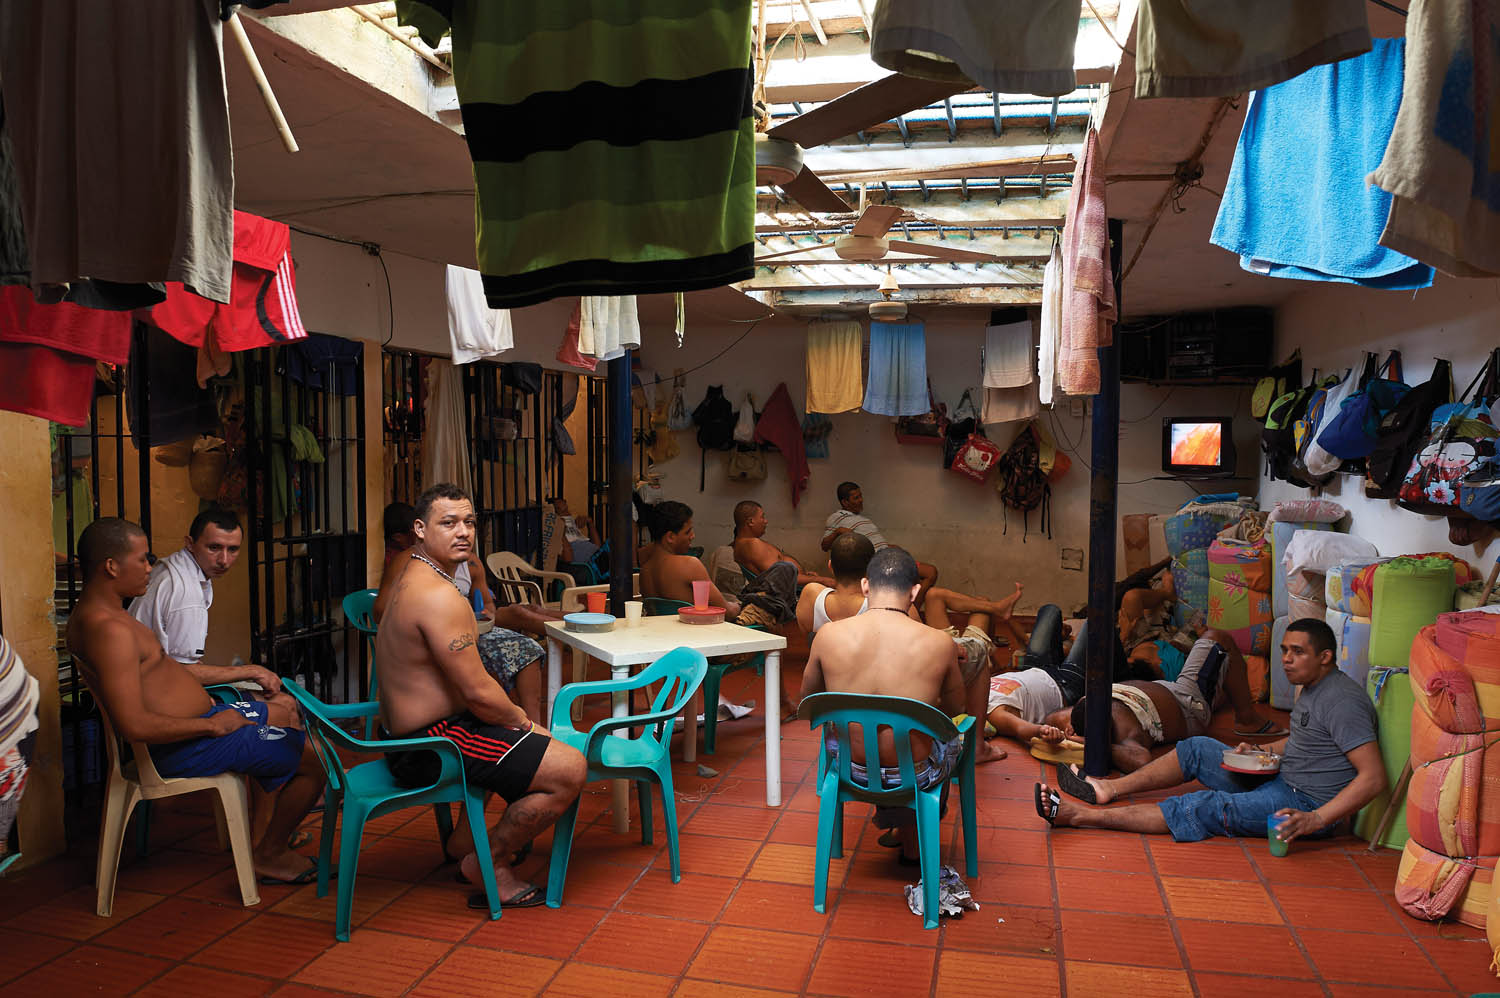 Establecimiento Carcelario de ReclusiÓn Especial, a medium-security prison with an o cial capacity of  fty inmates. It houses more than 100, and many sleep on the  oor. Sabanalarga, Colombia, 2011. Photograph by Jan Banning.